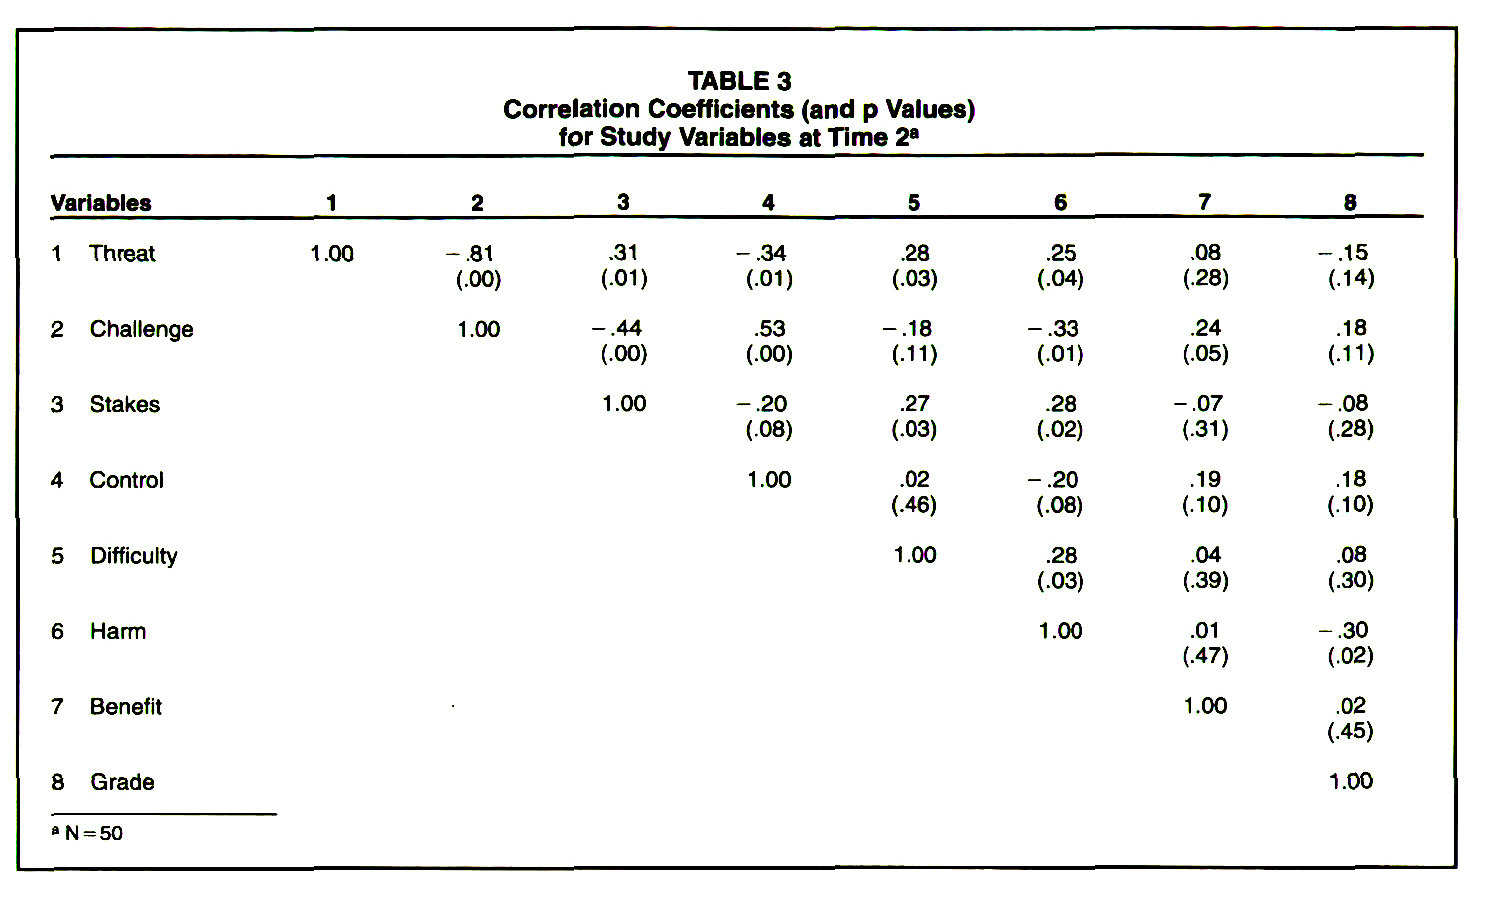 TABLE 3Correlation Coefficients (and p Values) for Study Variables at Time 2*